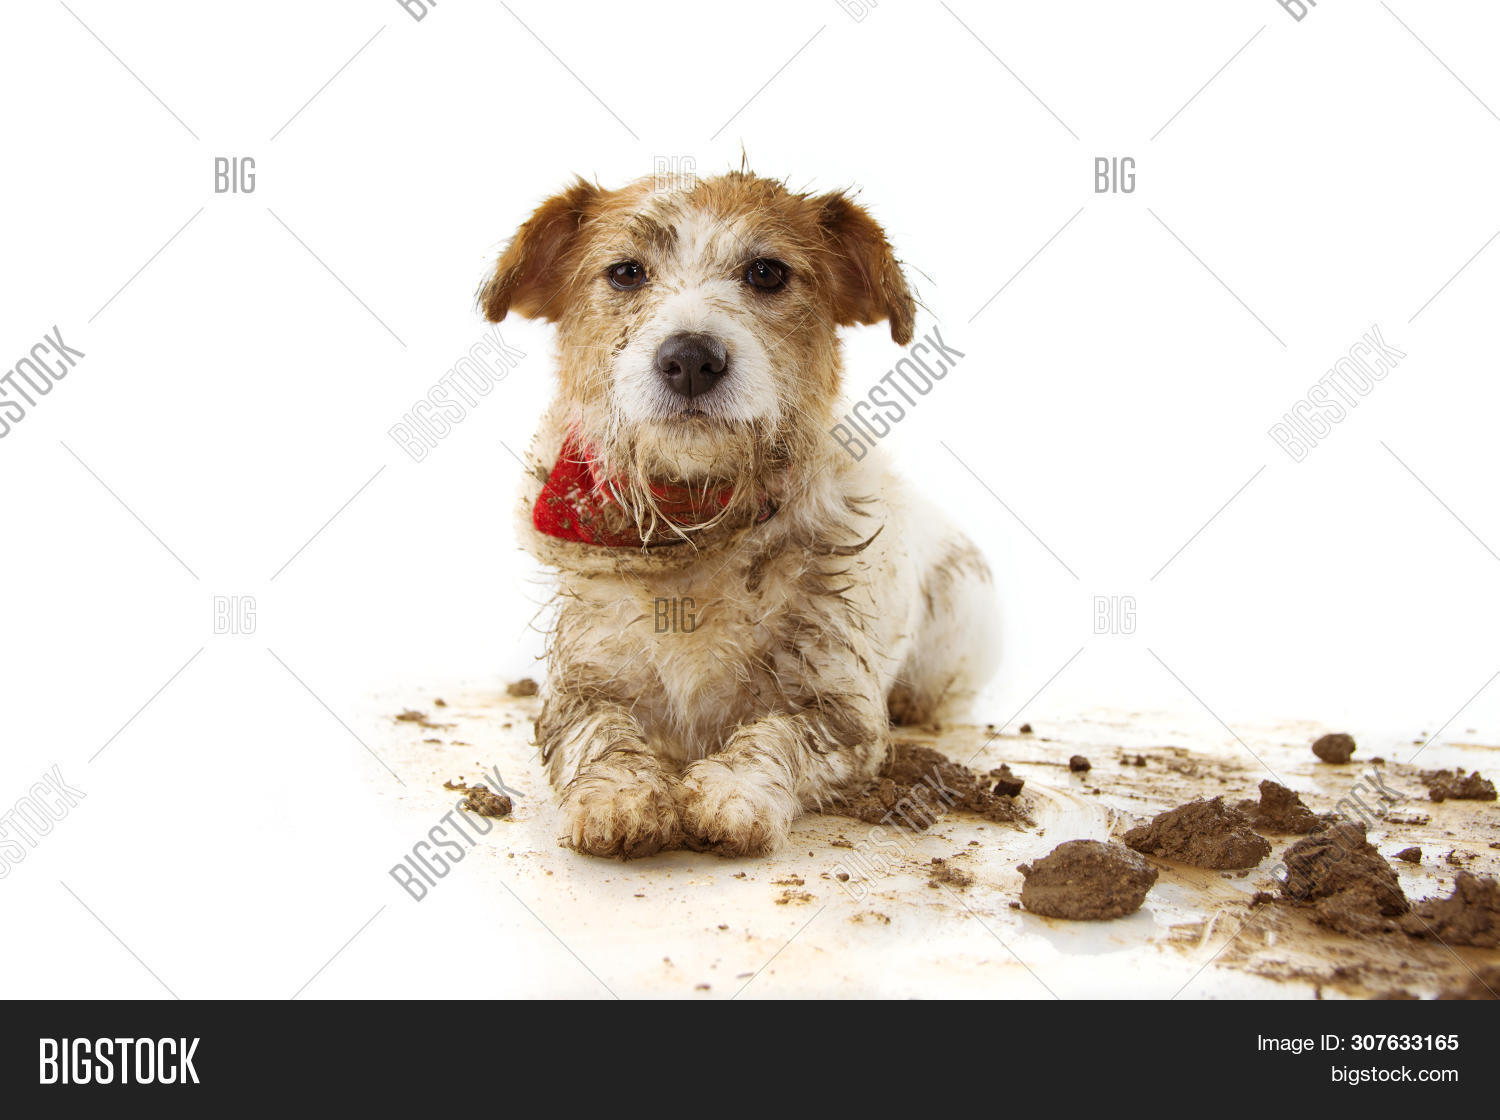 Dirty Dog Funny Jack Image Photo Free Trial Bigstock